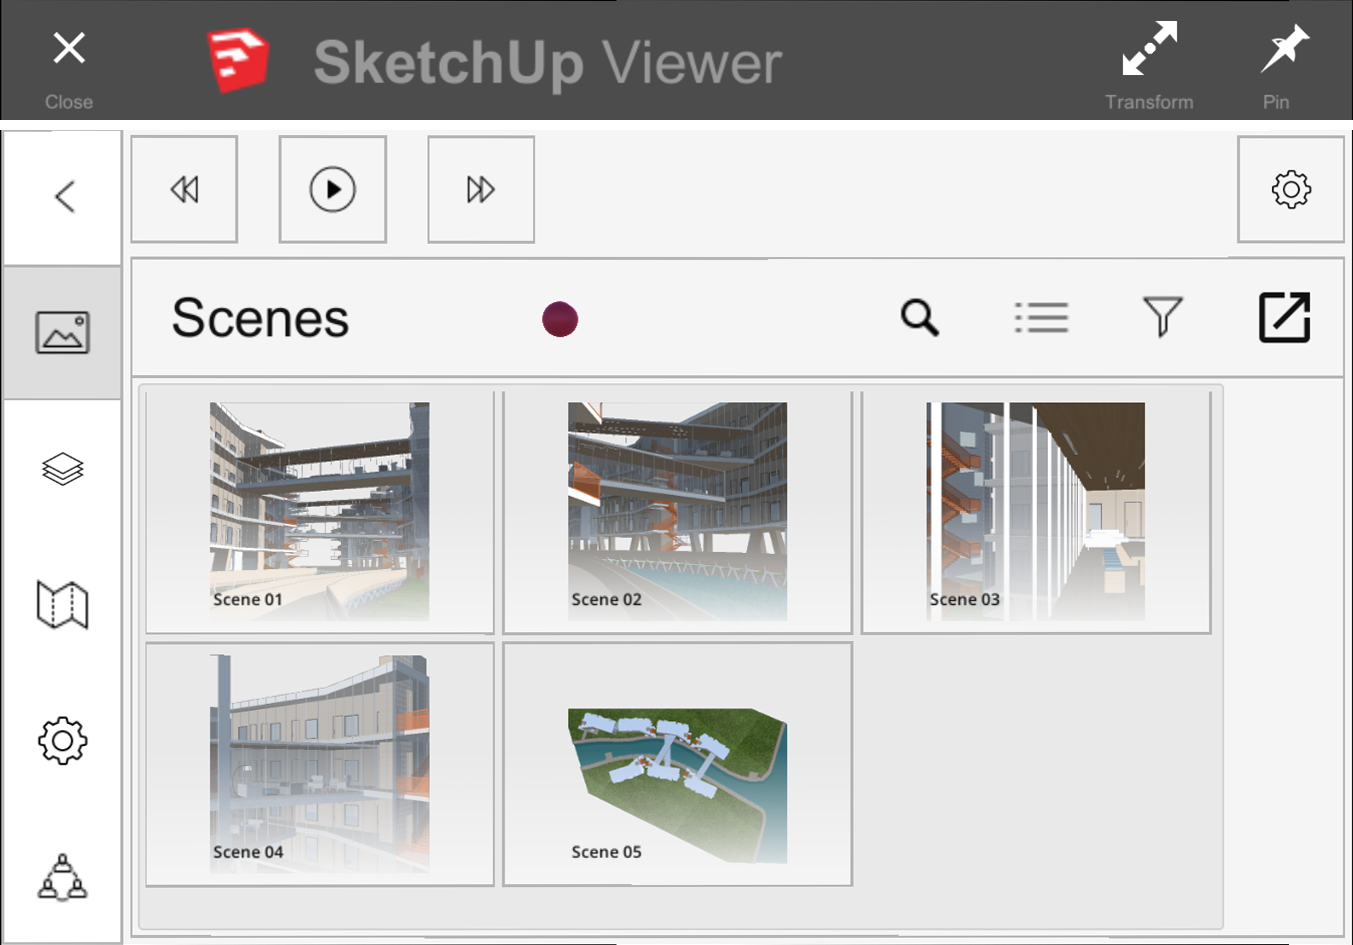 In SketchUp Viewer for HoloLens, you can view scenes saved with the SketchUp model